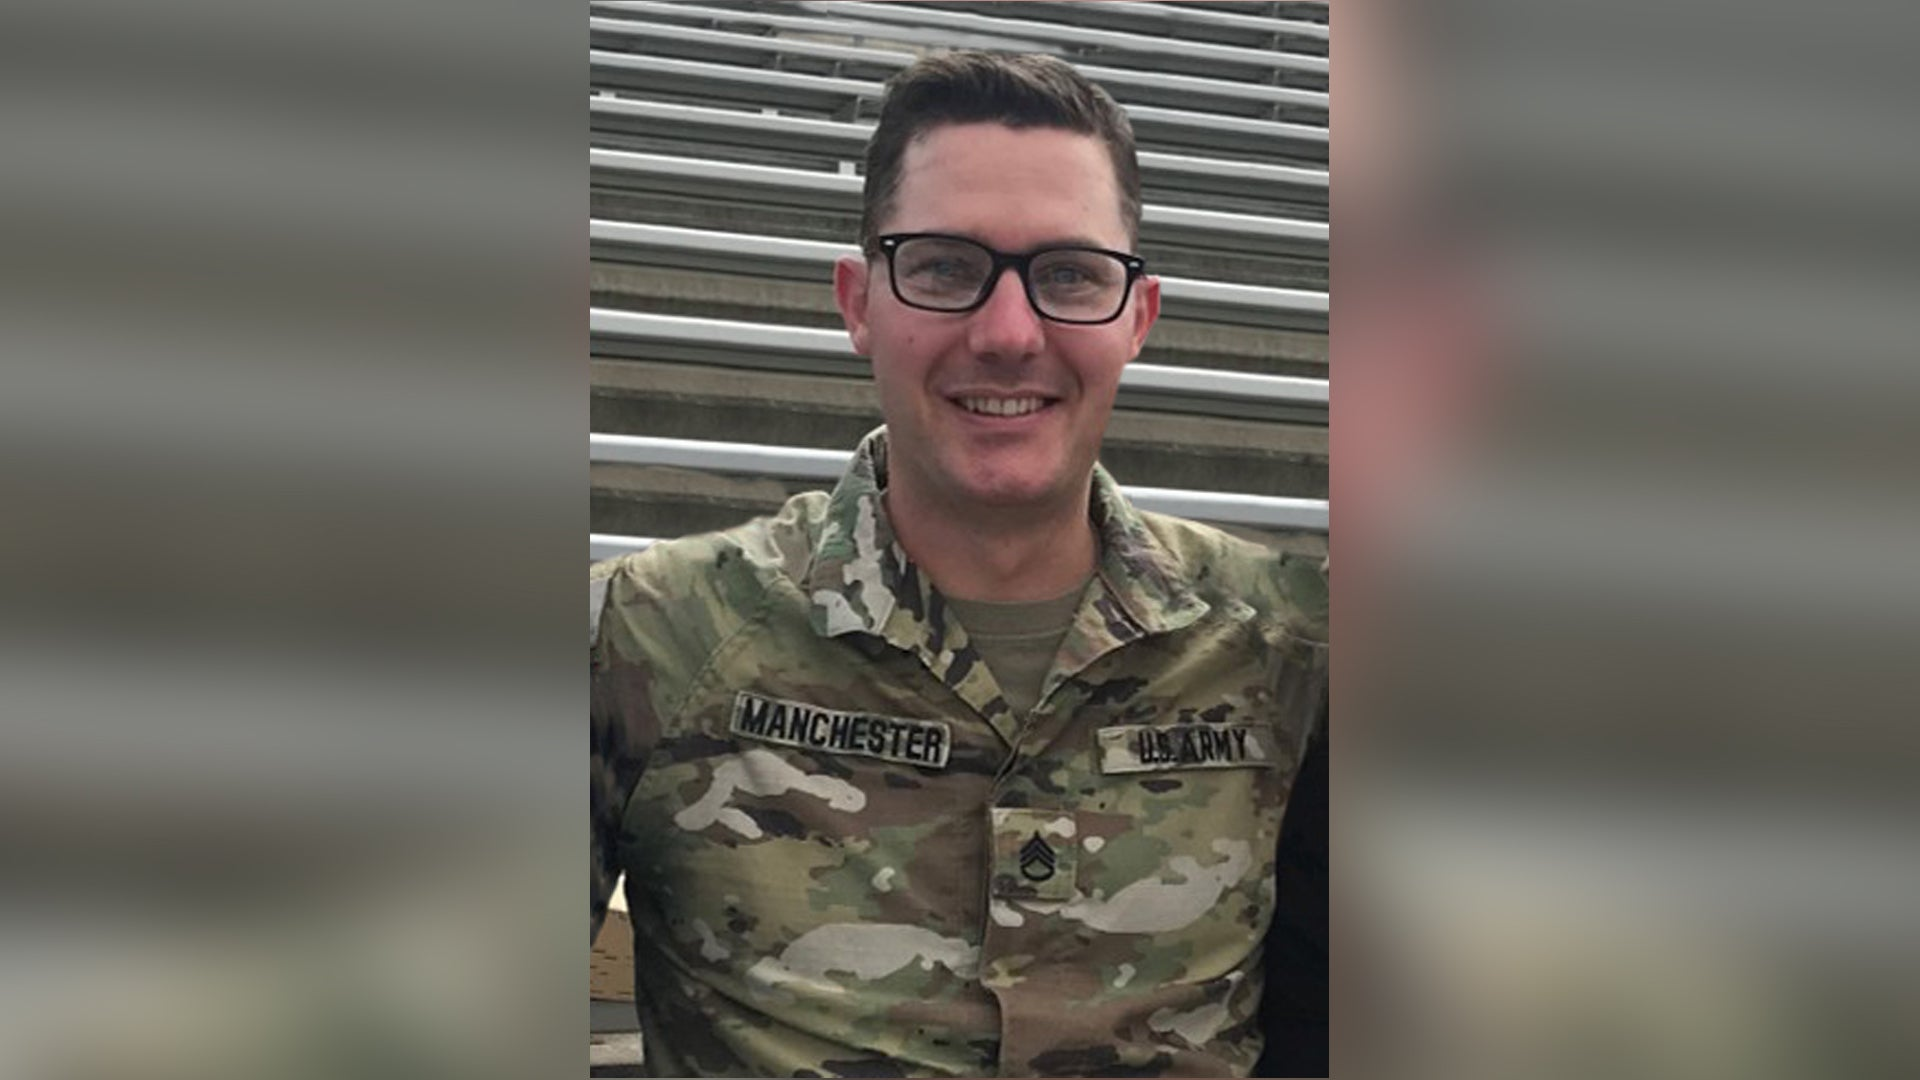 Texas Guardsman dies in non-combat incident in Kuwait